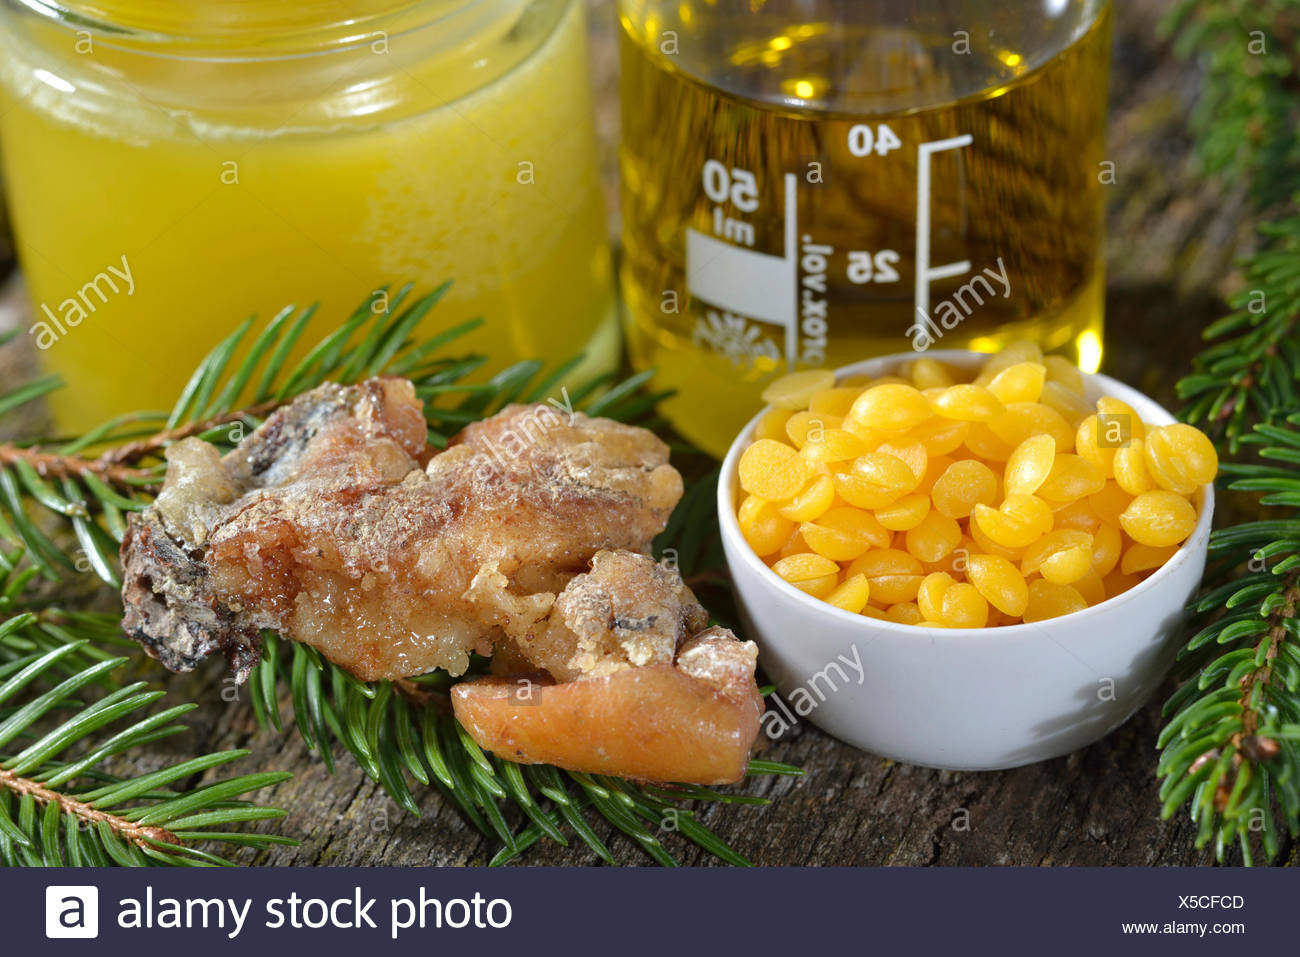 Production spruce resin ointment / (Picea abies) - Stock Image